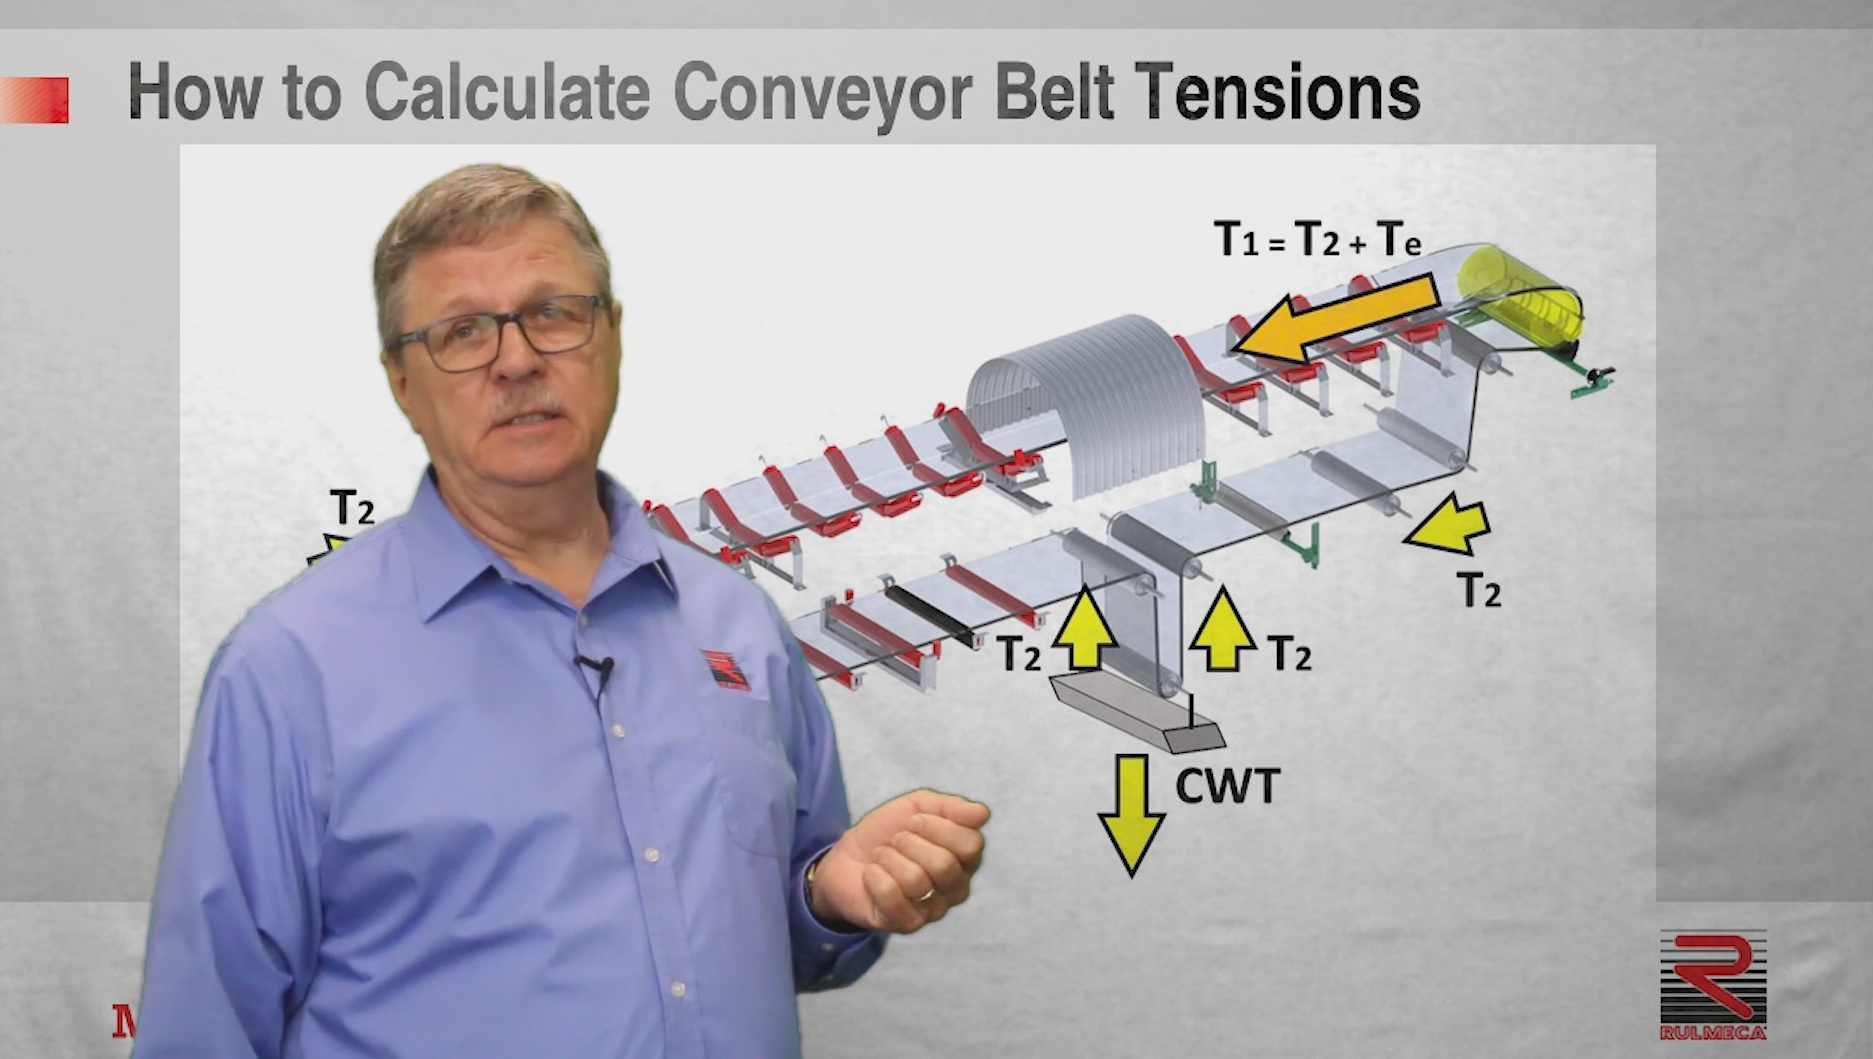 Mike Gawinski explains how to calculate belt tensions